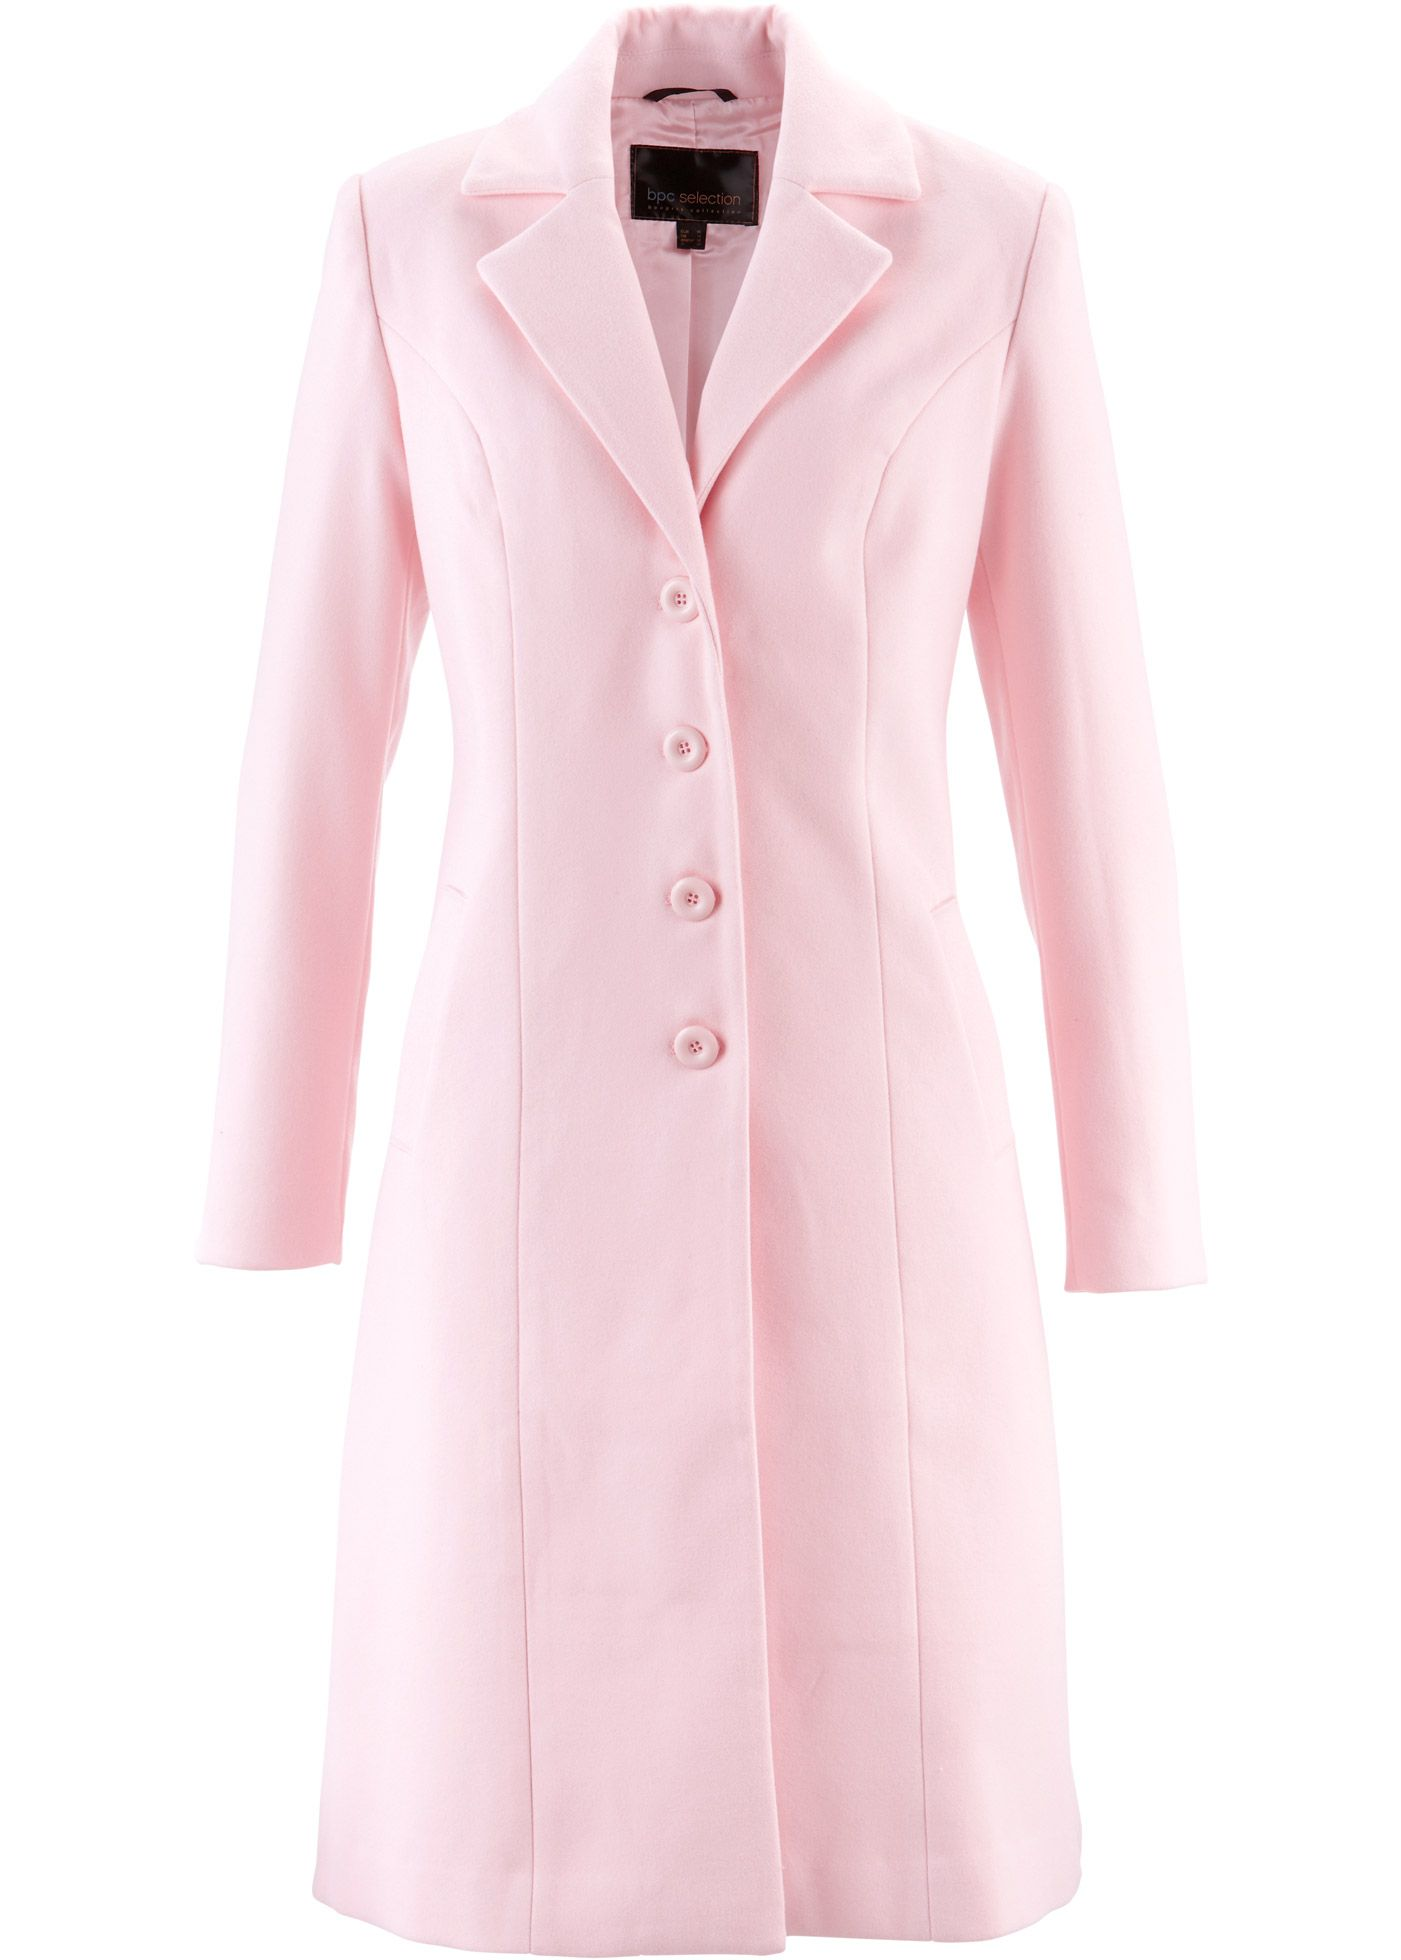 Commandez maintenant Manteau style blazer rose clair - bpc selection à  partir de 49,99